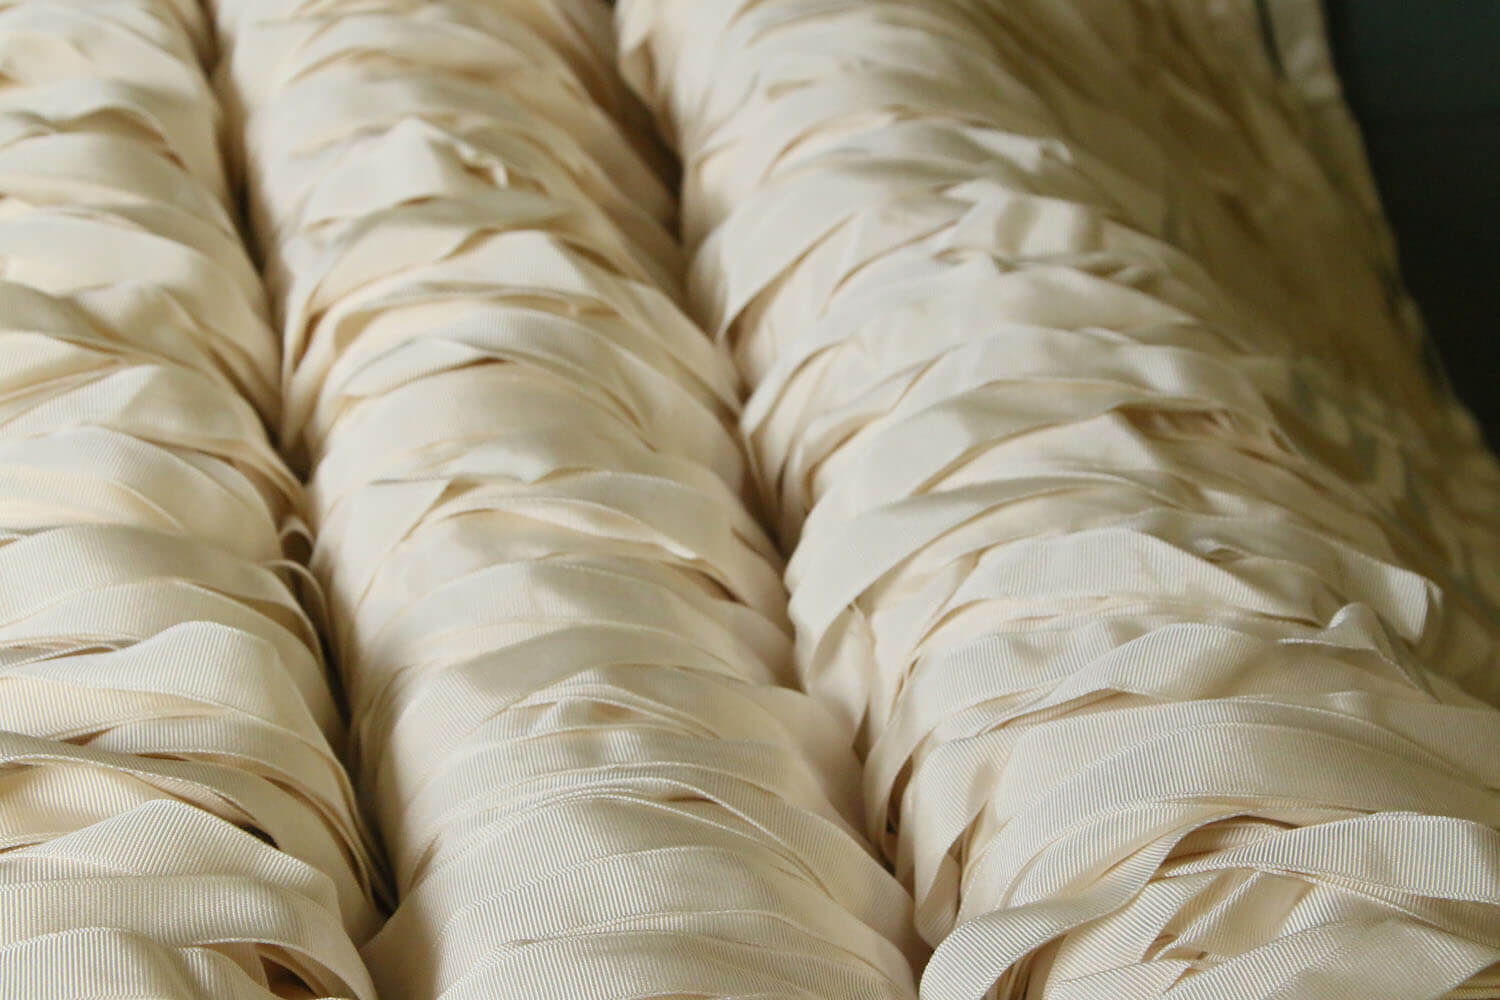 Long pieces of white fabric laying on top of each other